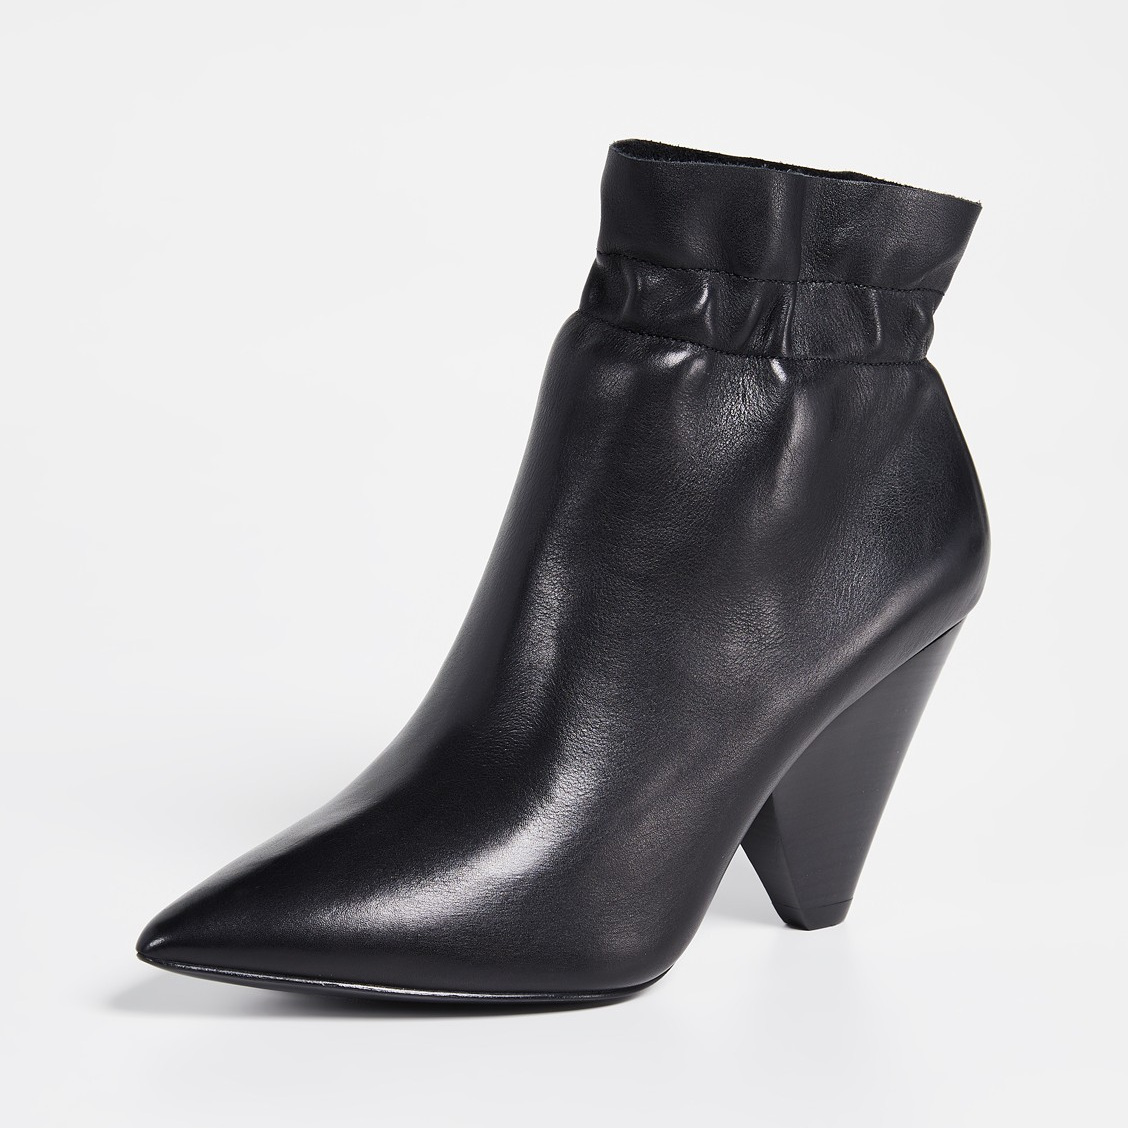 black-lether-booties-heeled